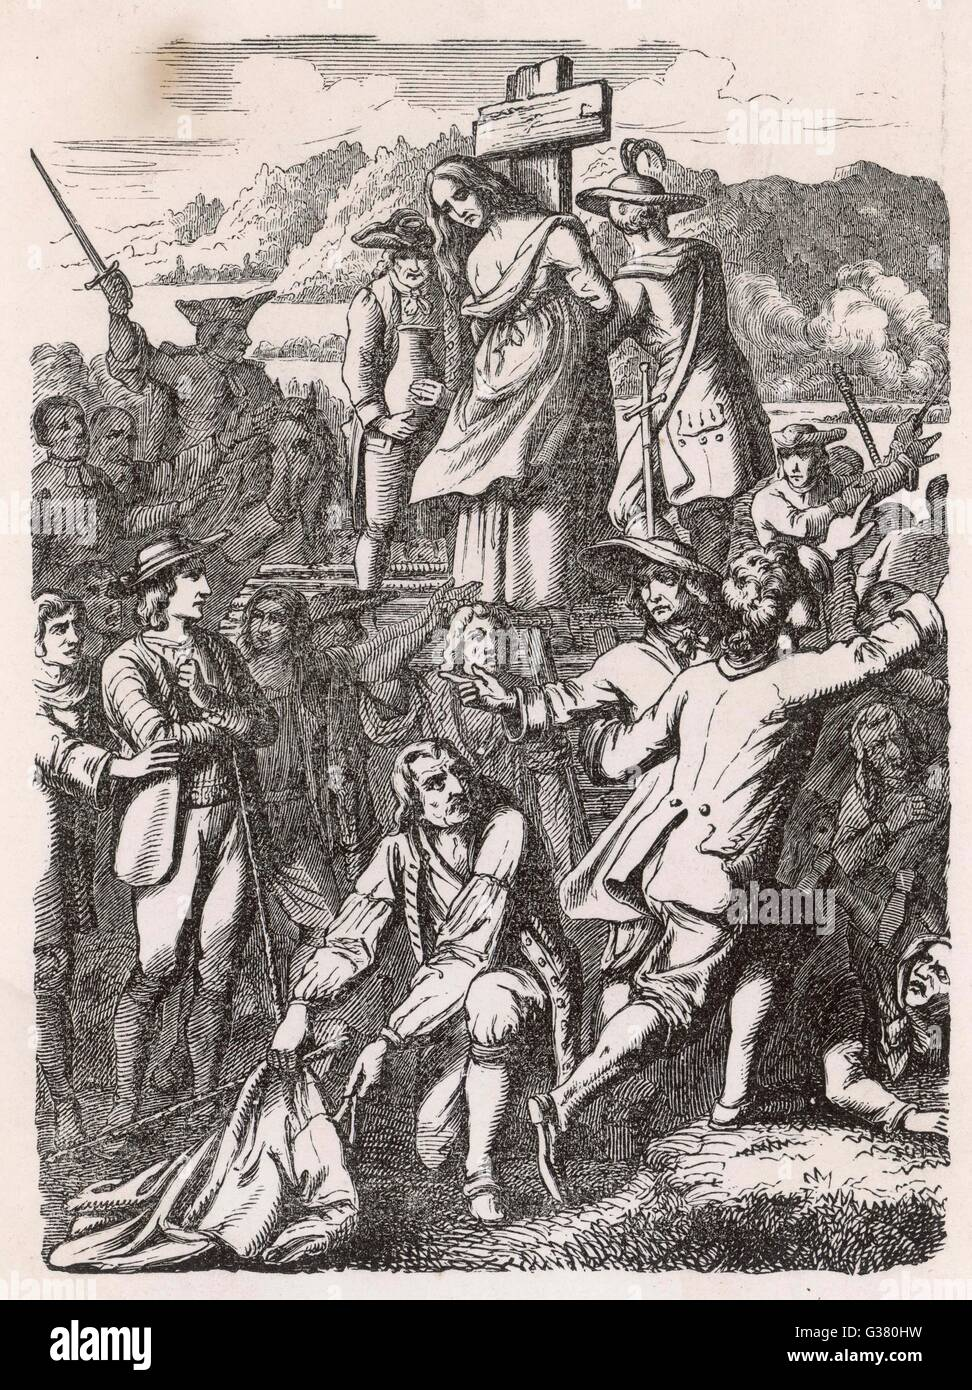 A Swiss woman accused of  witchcraft is burnt at the  stake        Date: circa 1700 - Stock Image